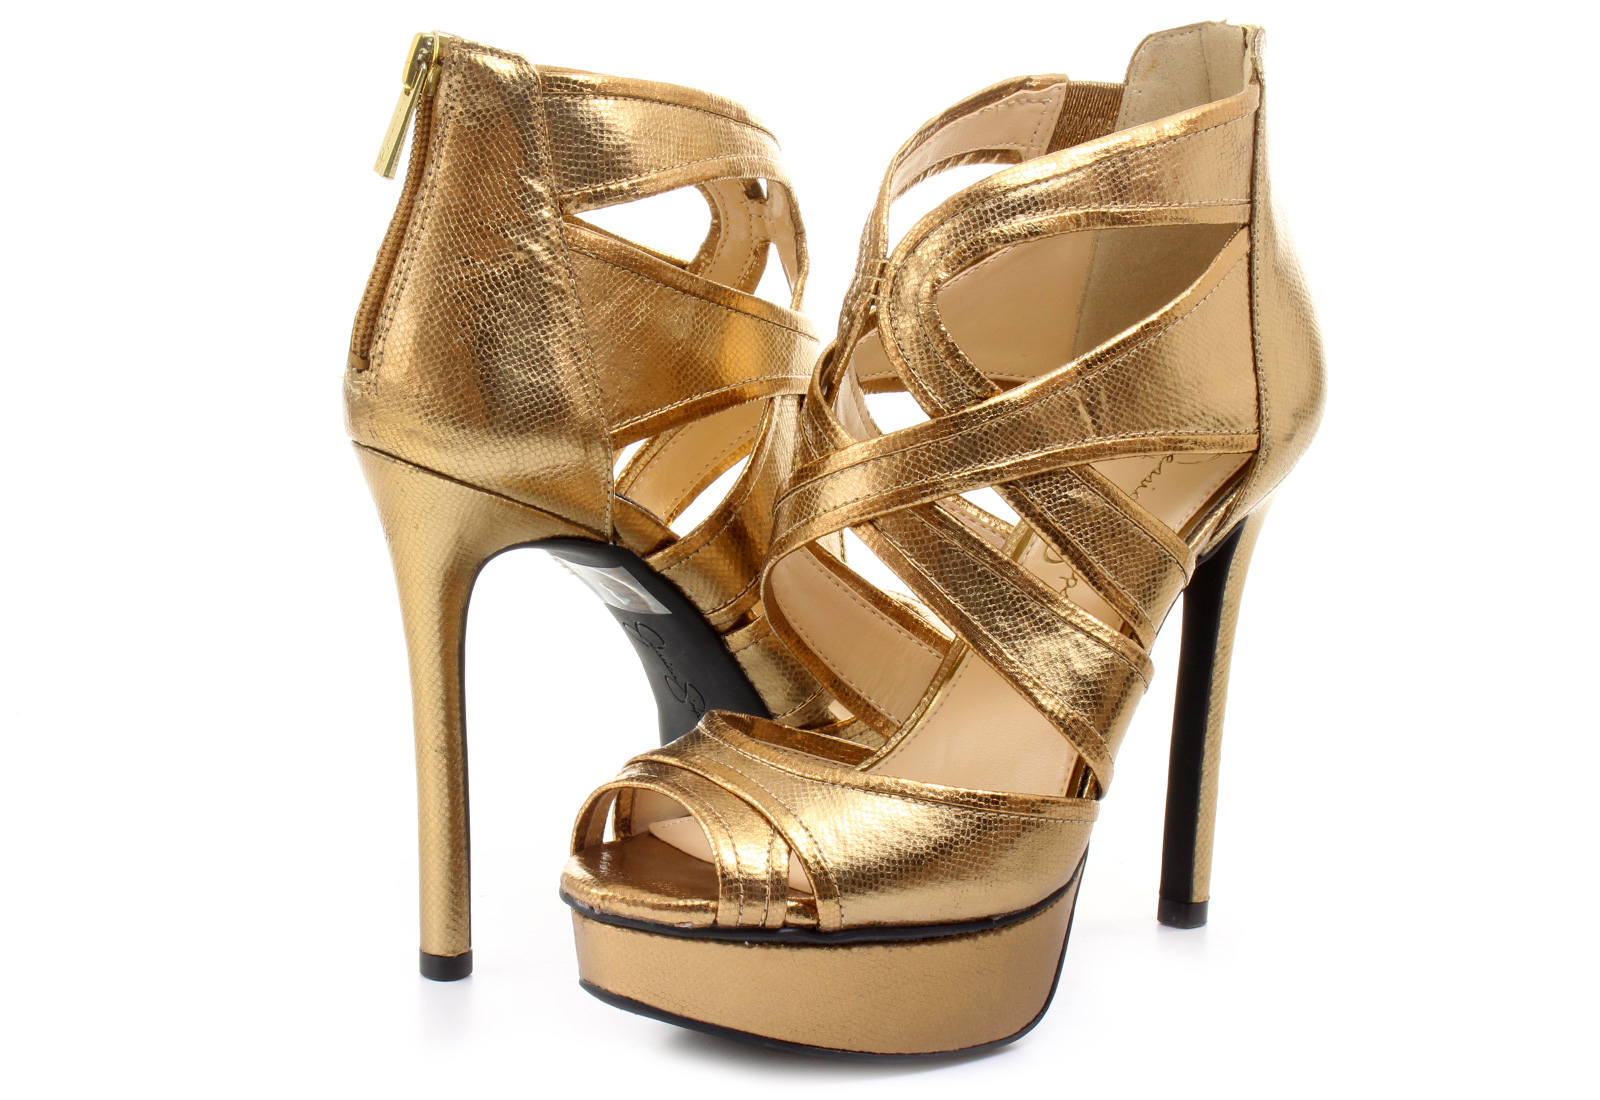 Jessica Simpson shoes have you covered there as well. The selection of sleek pumps and high heels adds a sophisticated air to your professional aesthetic. Pair your shoes with everything from trousers and blouses to dresses and skirts.